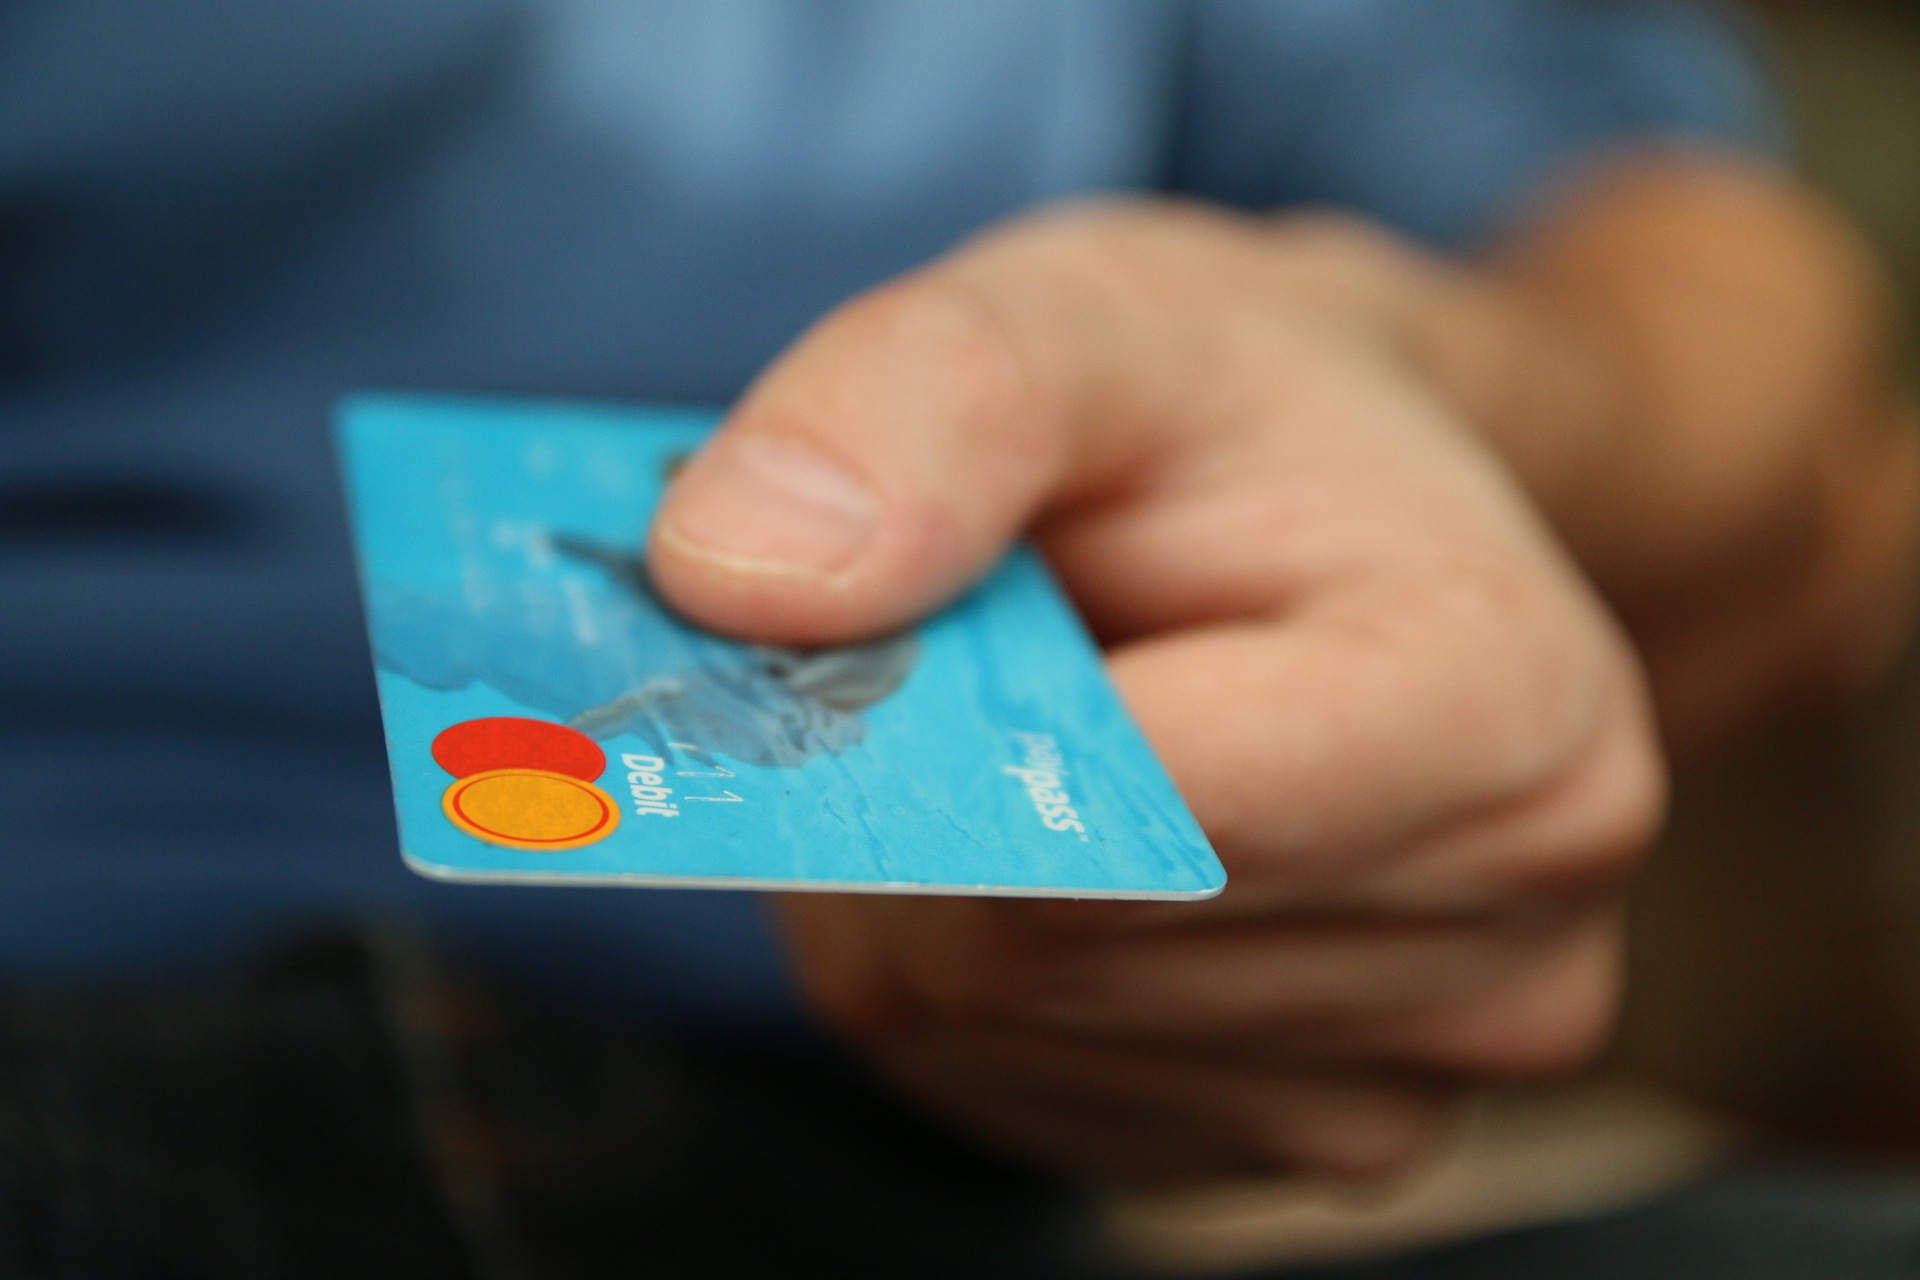 money-card-business-credit-card-50987-1